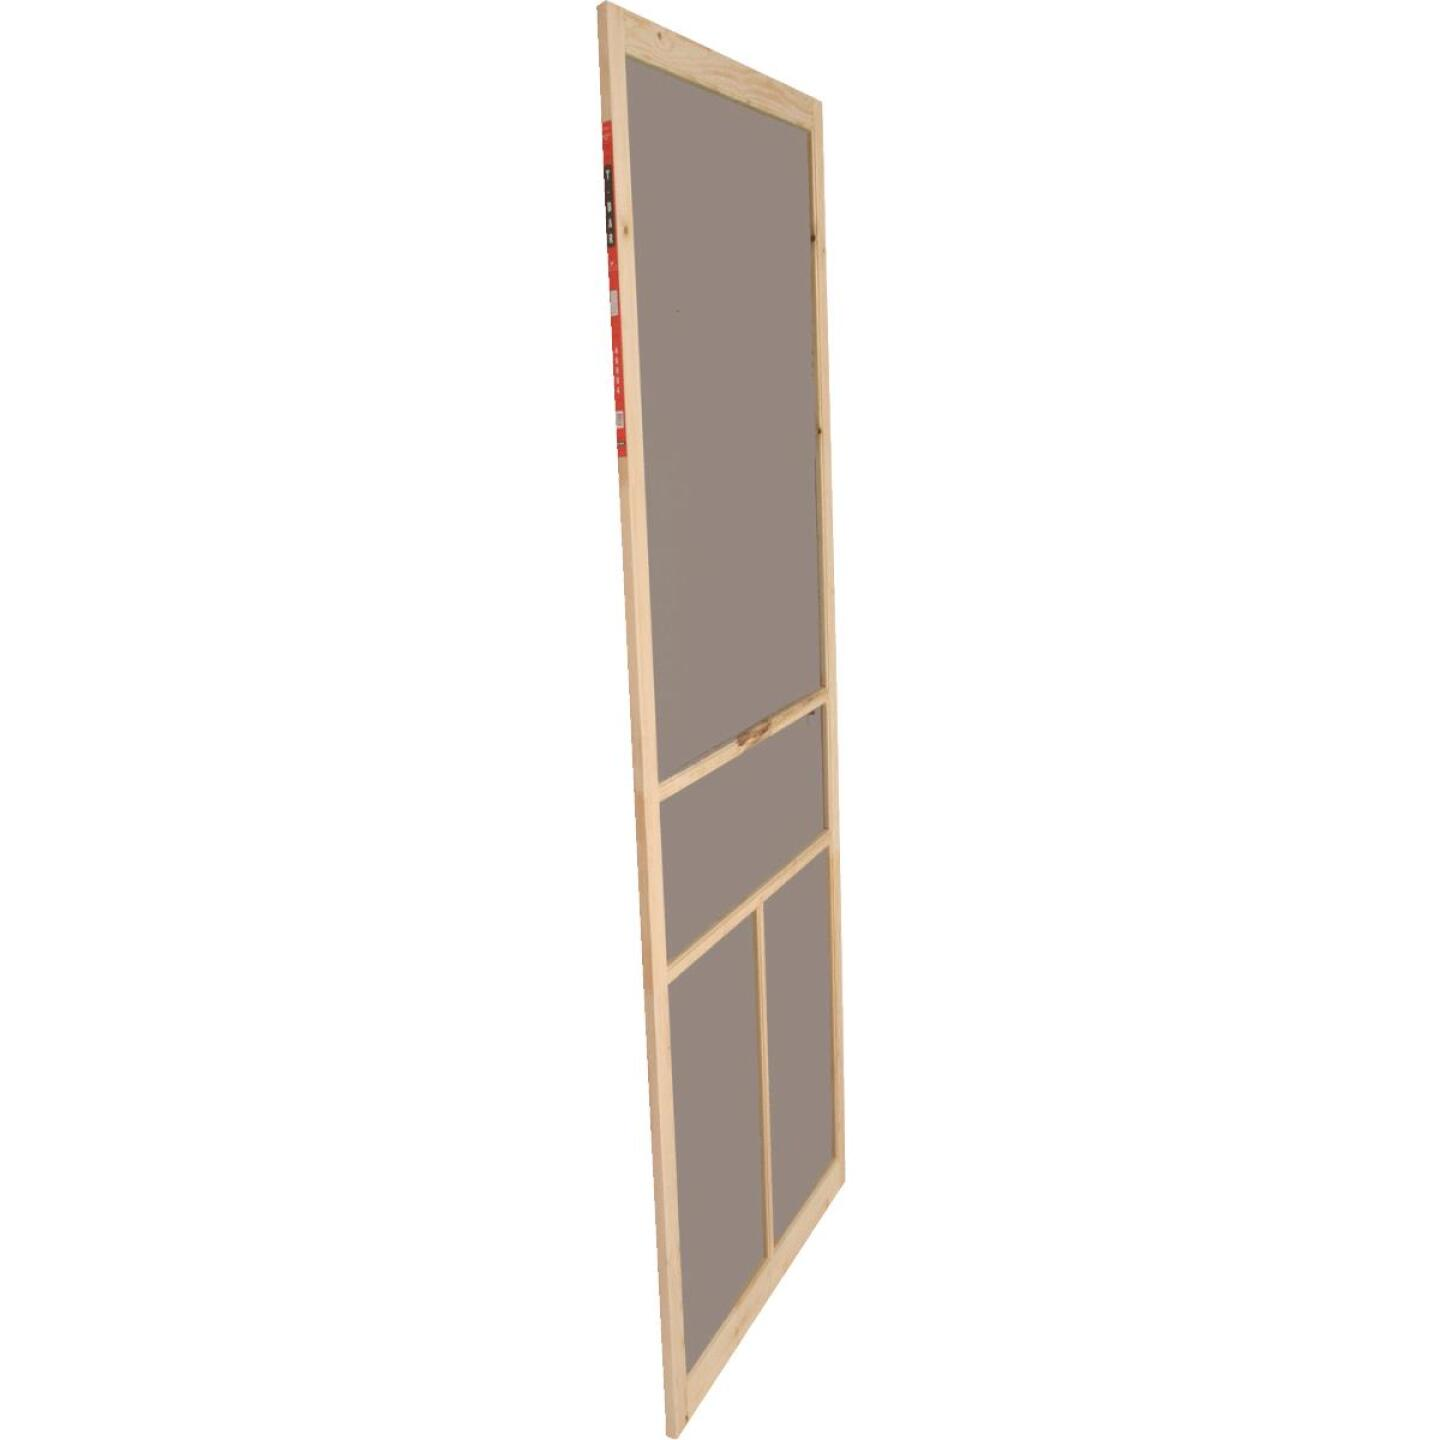 Snavely Kimberly Bay 36 In. W. x 80 In. H. x 1 In. Thick Natural Fingerjoint Pine T-Bar Screen Door Image 1